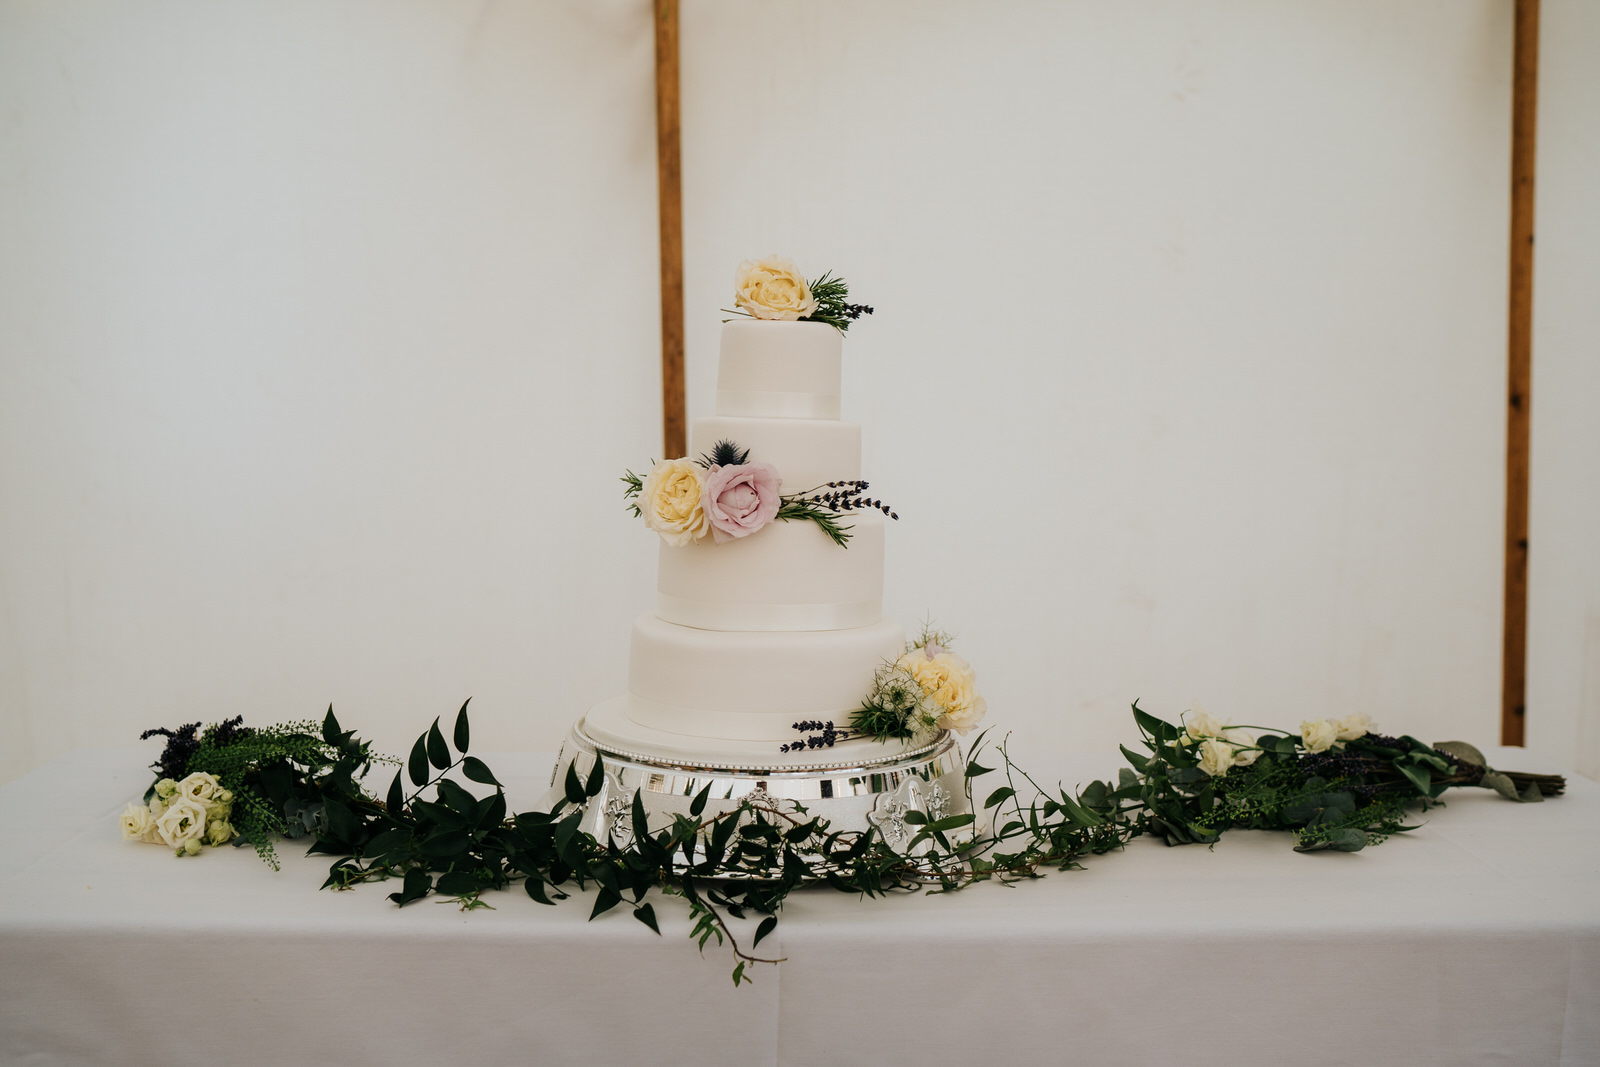 Photograph of three-tiered, white wedding cake with yellow and pink roses as decoration